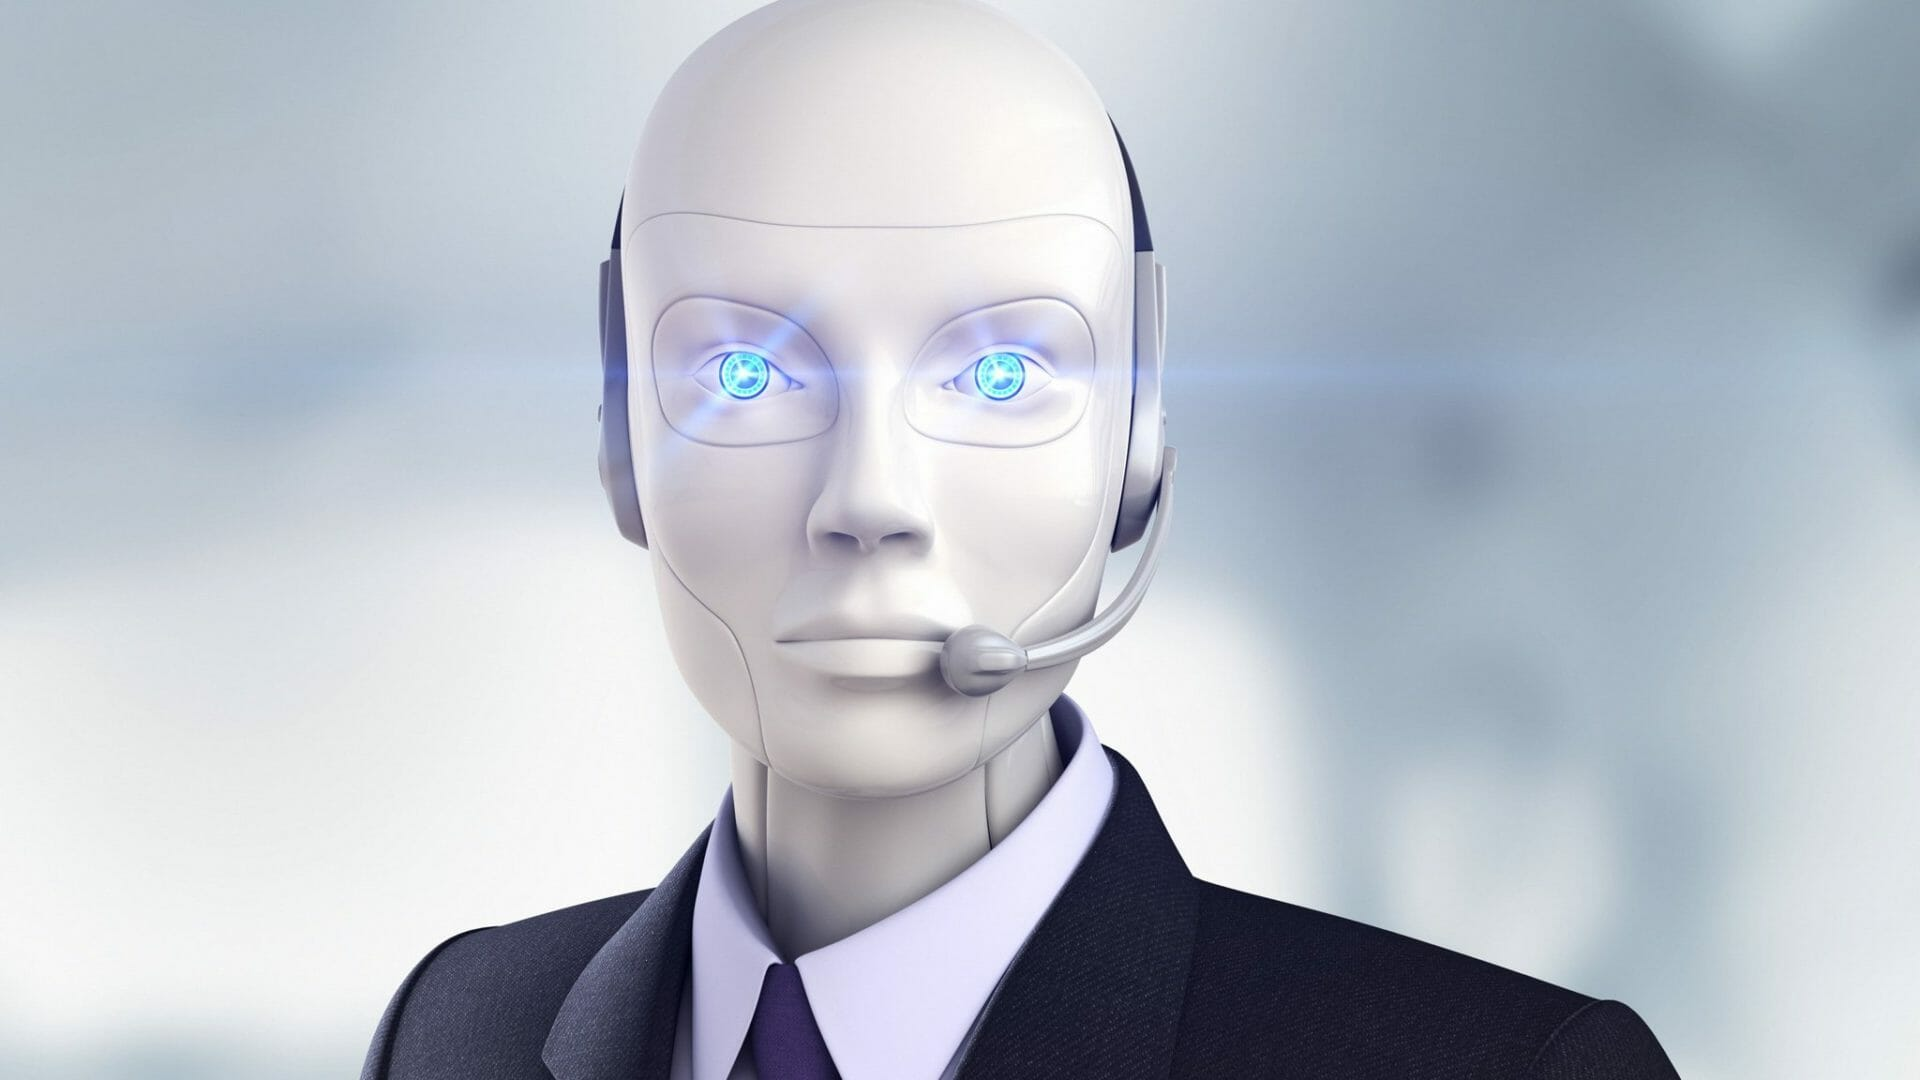 Why Use AI in HR?